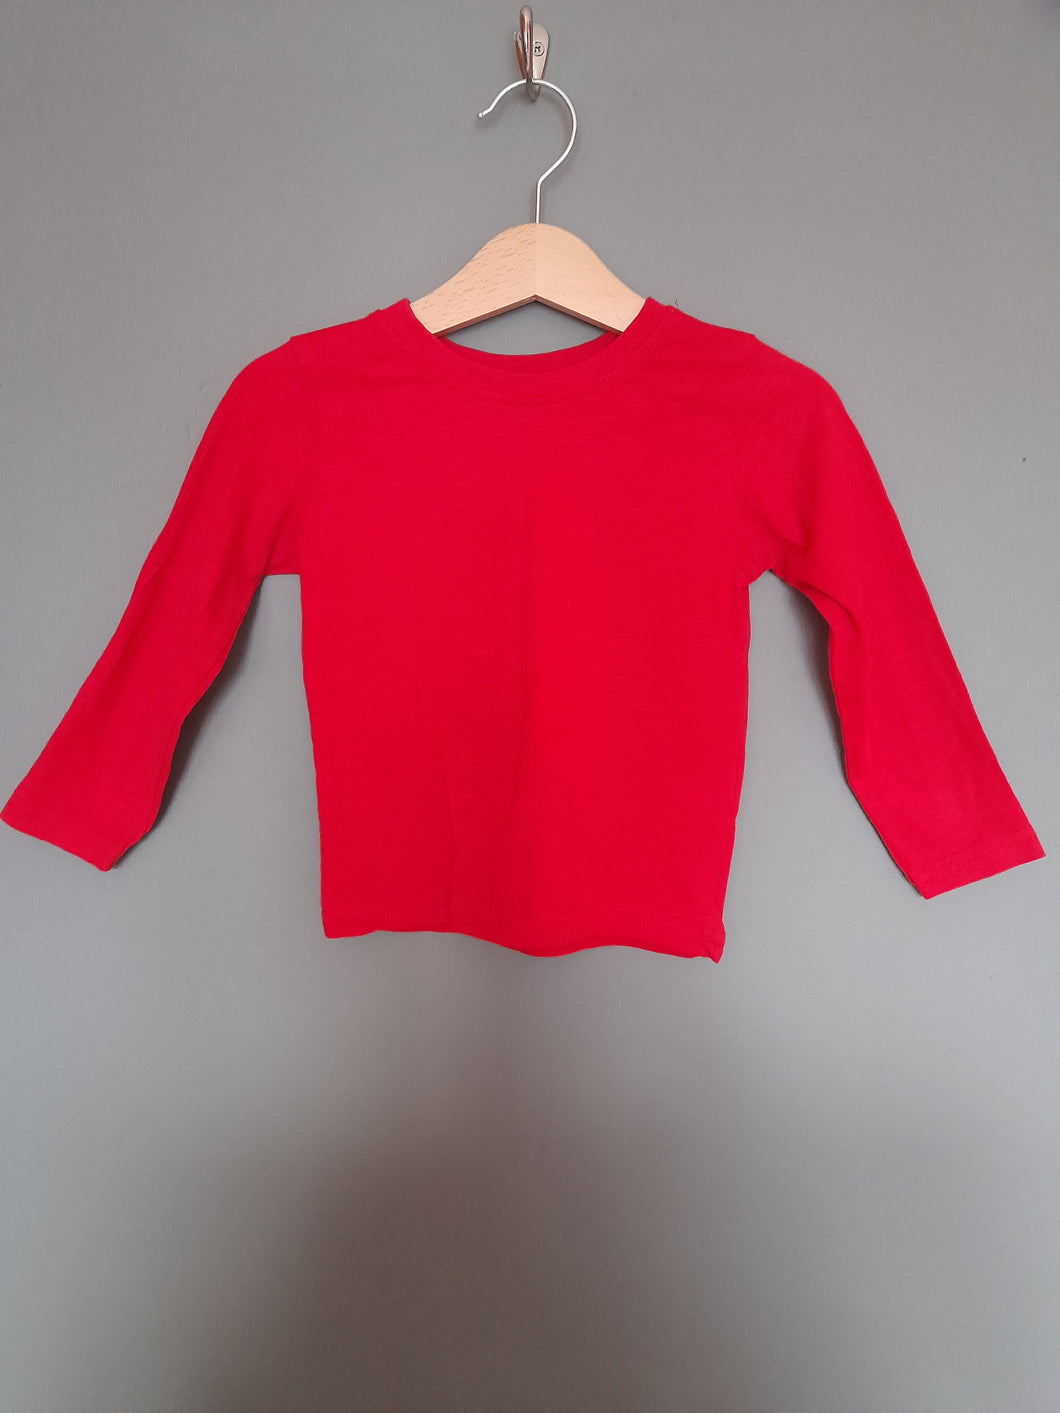 12-18 months Red long Sleeve top - Primark